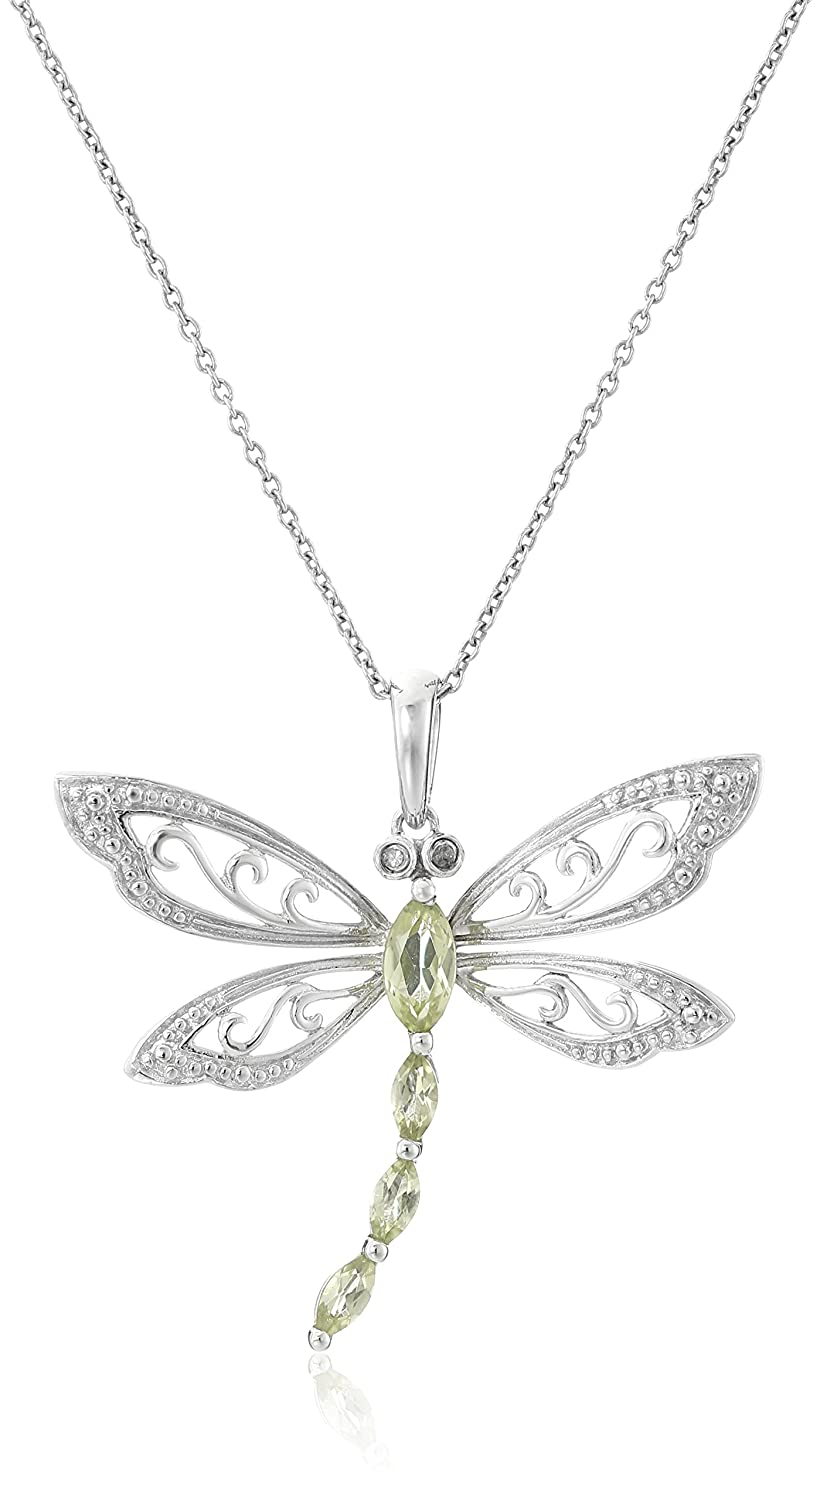 Sterling Silver Marquise Shaped Gemstone and Diamond Dragonfly Pendant Necklace (0.01 cttw, I-J Color, I1-I2 Clarity), 18 I2-I3 Clarity) 18 Amazon Collection VP4583V8T1SJ1